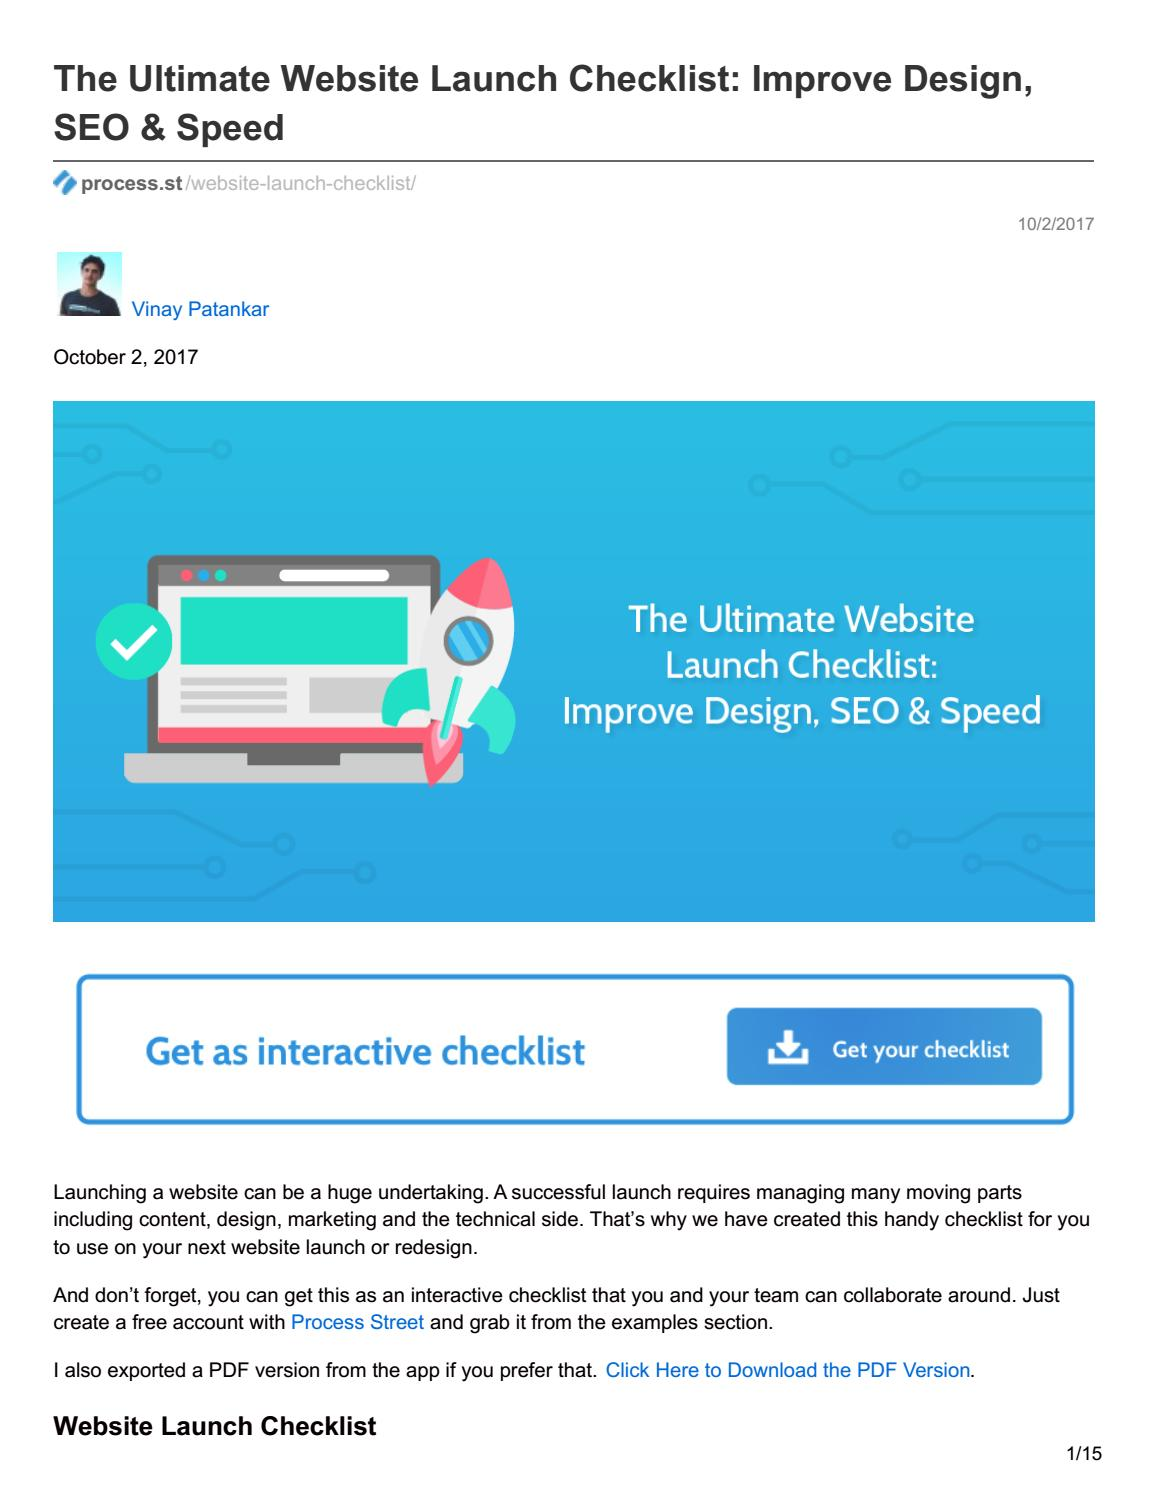 The Ultimate Website Launch Checklist: Improve Design, SEO